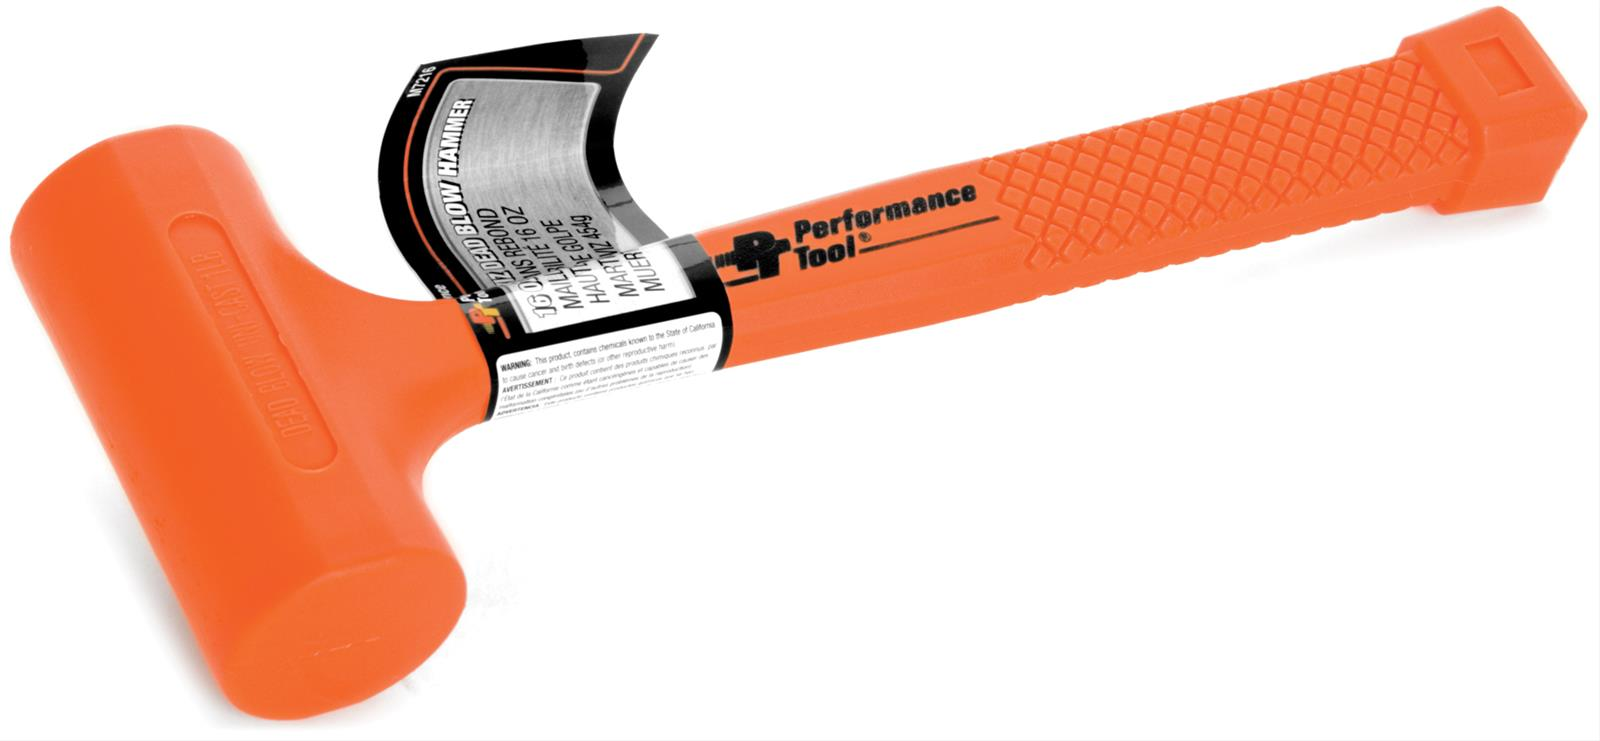 Performance Tool M7232 32oz Hi Viz Dead Blow Hammer Auto Parts And Vehicles Automotive Hand Tools A wide variety of dead blow hammer options are available to you, such as application, handle material, and hammer type. livingon